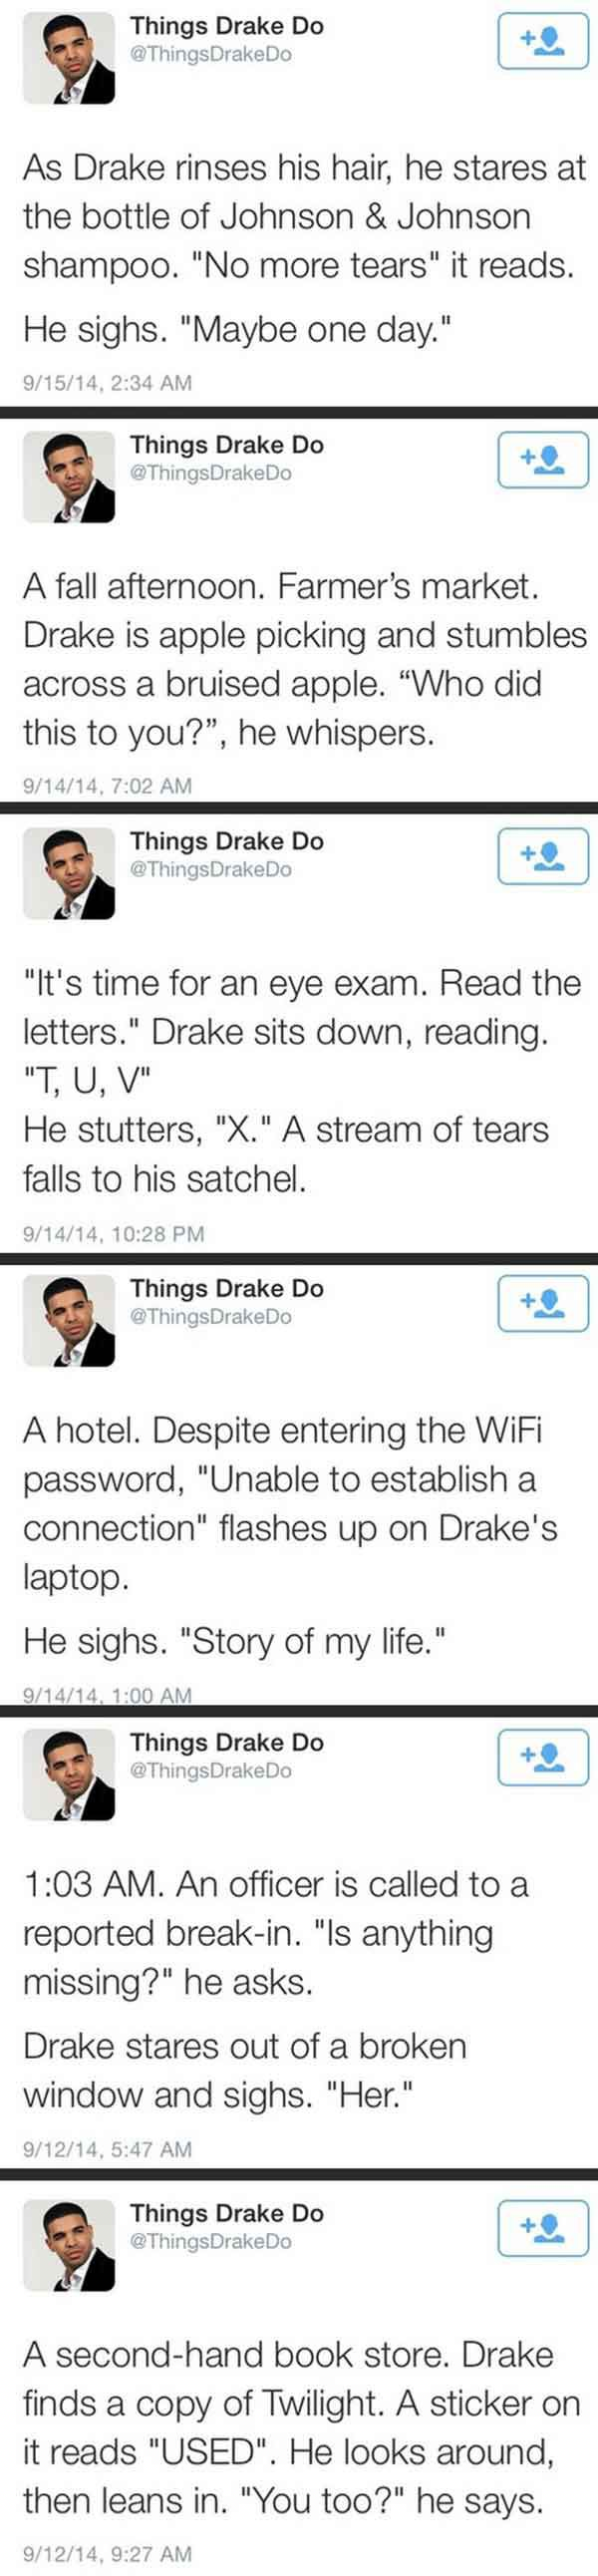 Things Drake Do